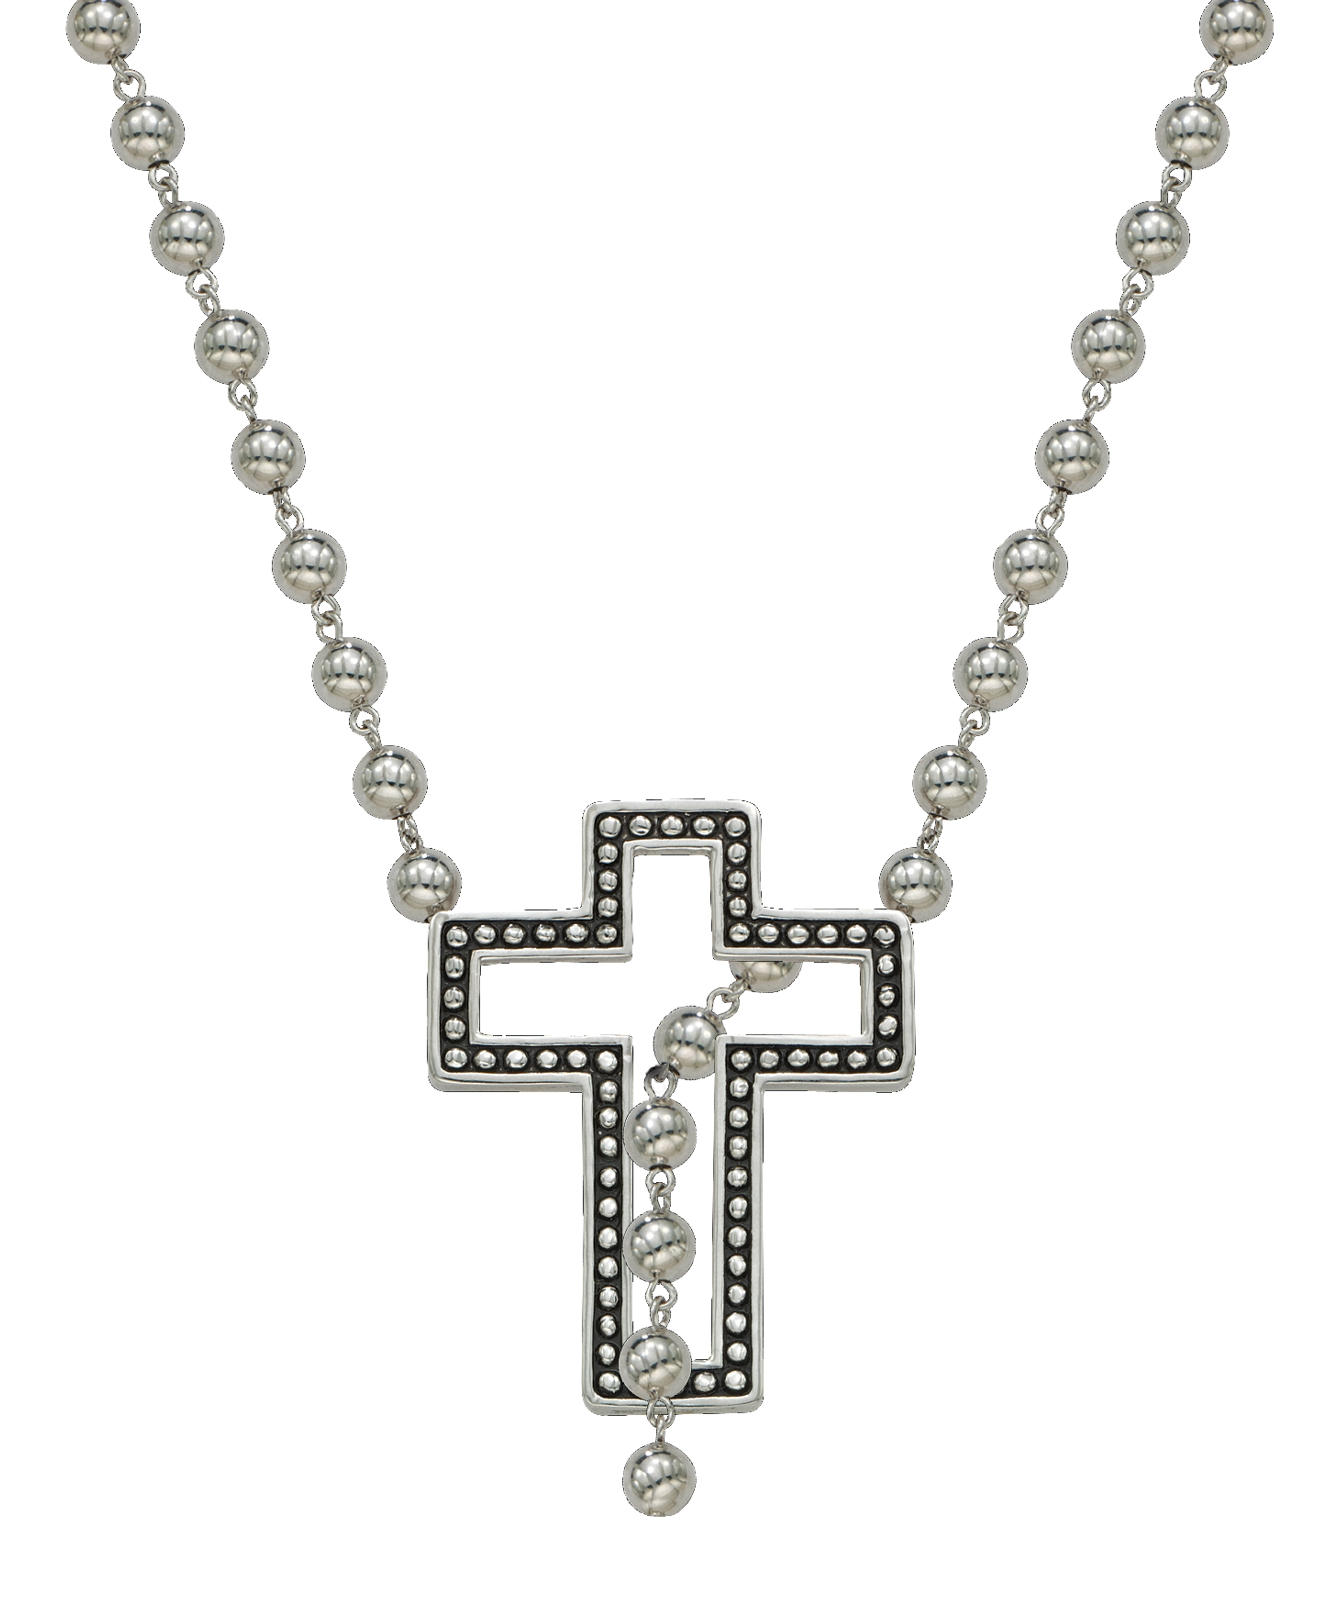 Montana Silversmiths Silver Studded Cross Lariat Necklace